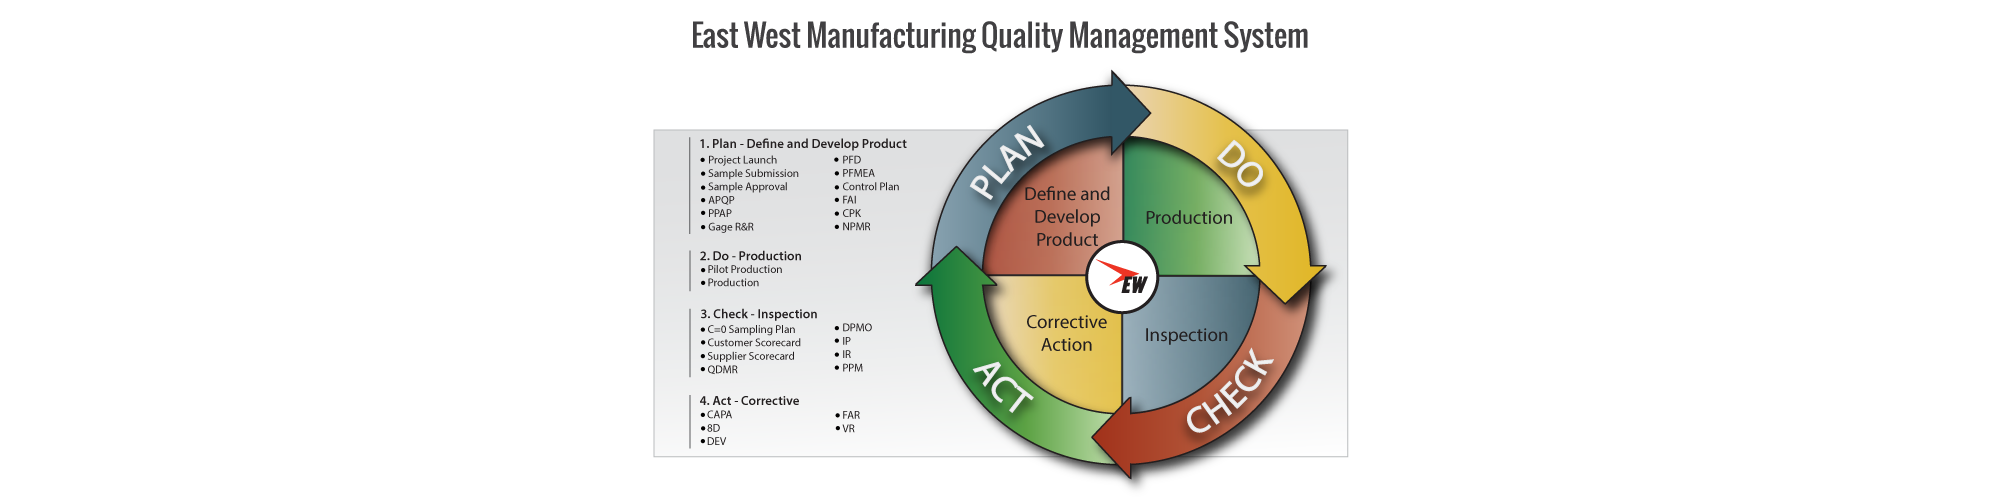 East West Quality Management System